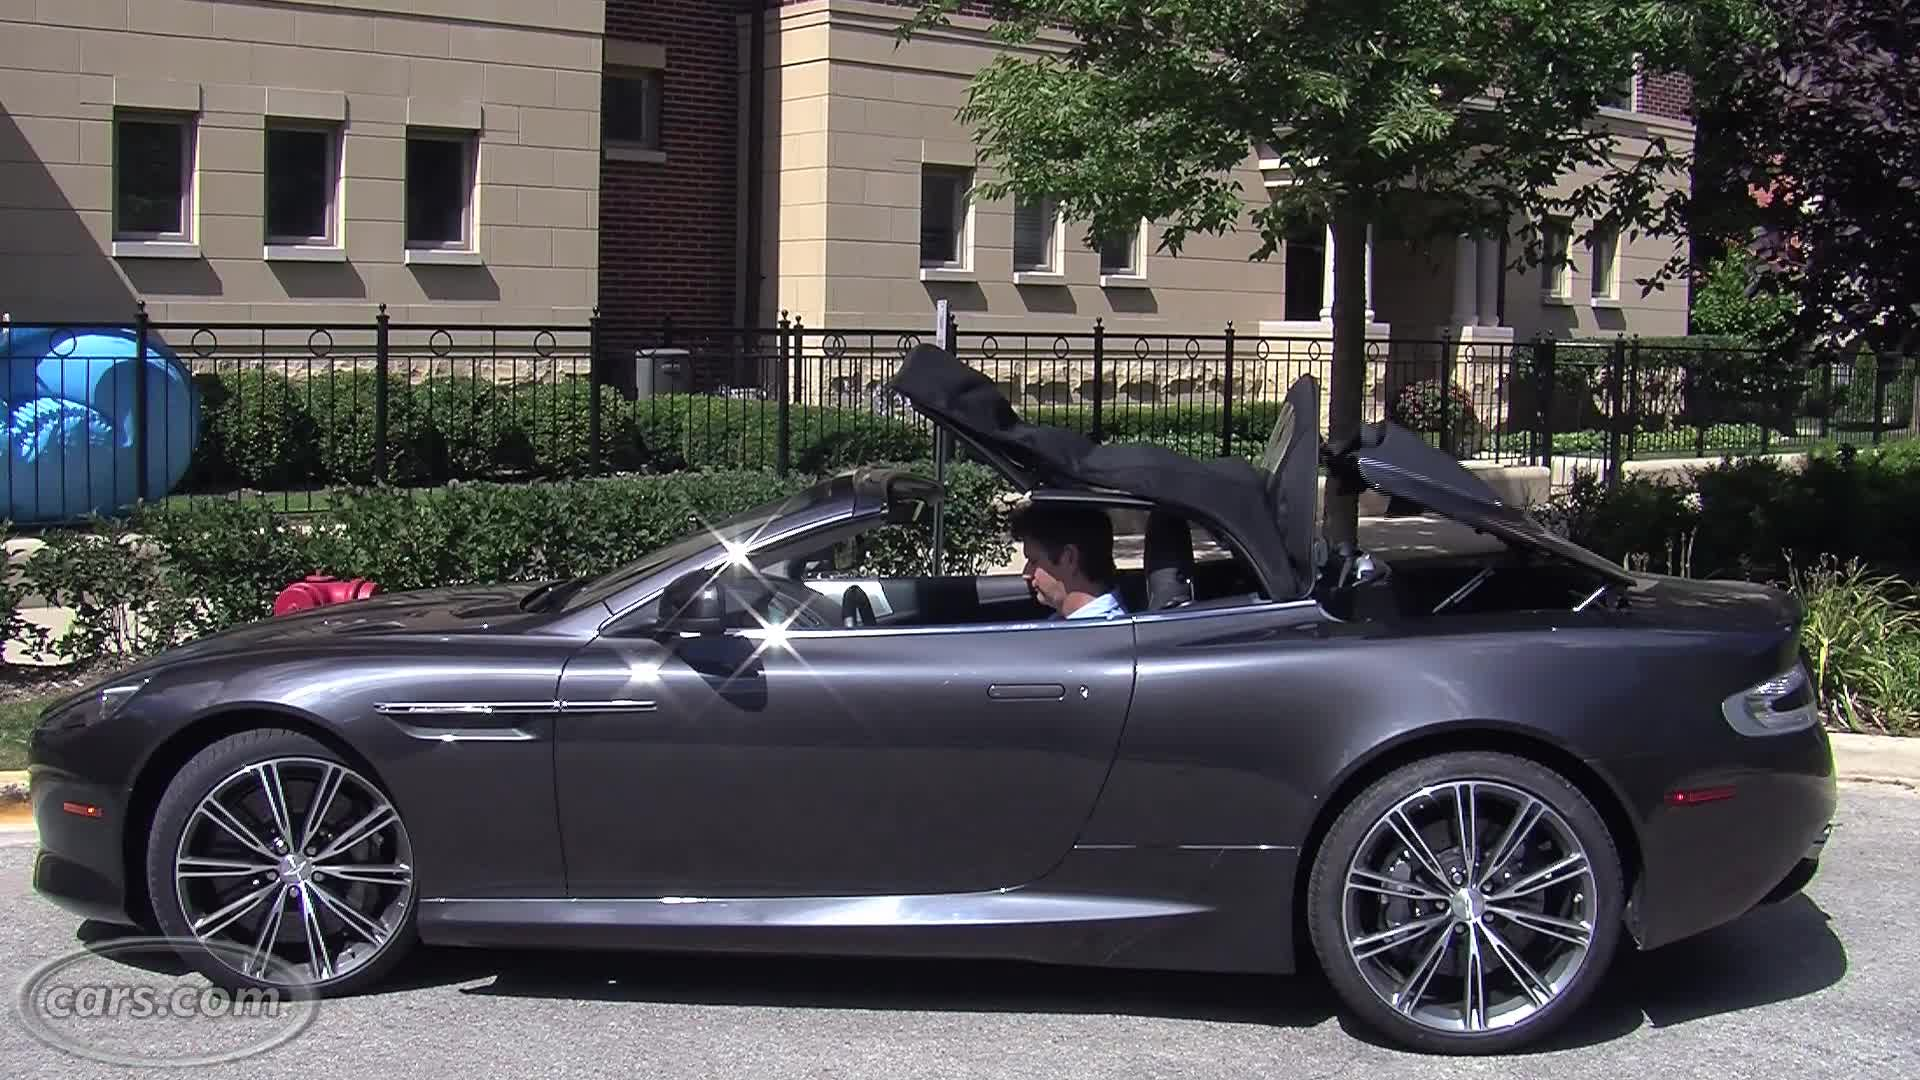 Video: 2012 Aston Martin Virage Volante